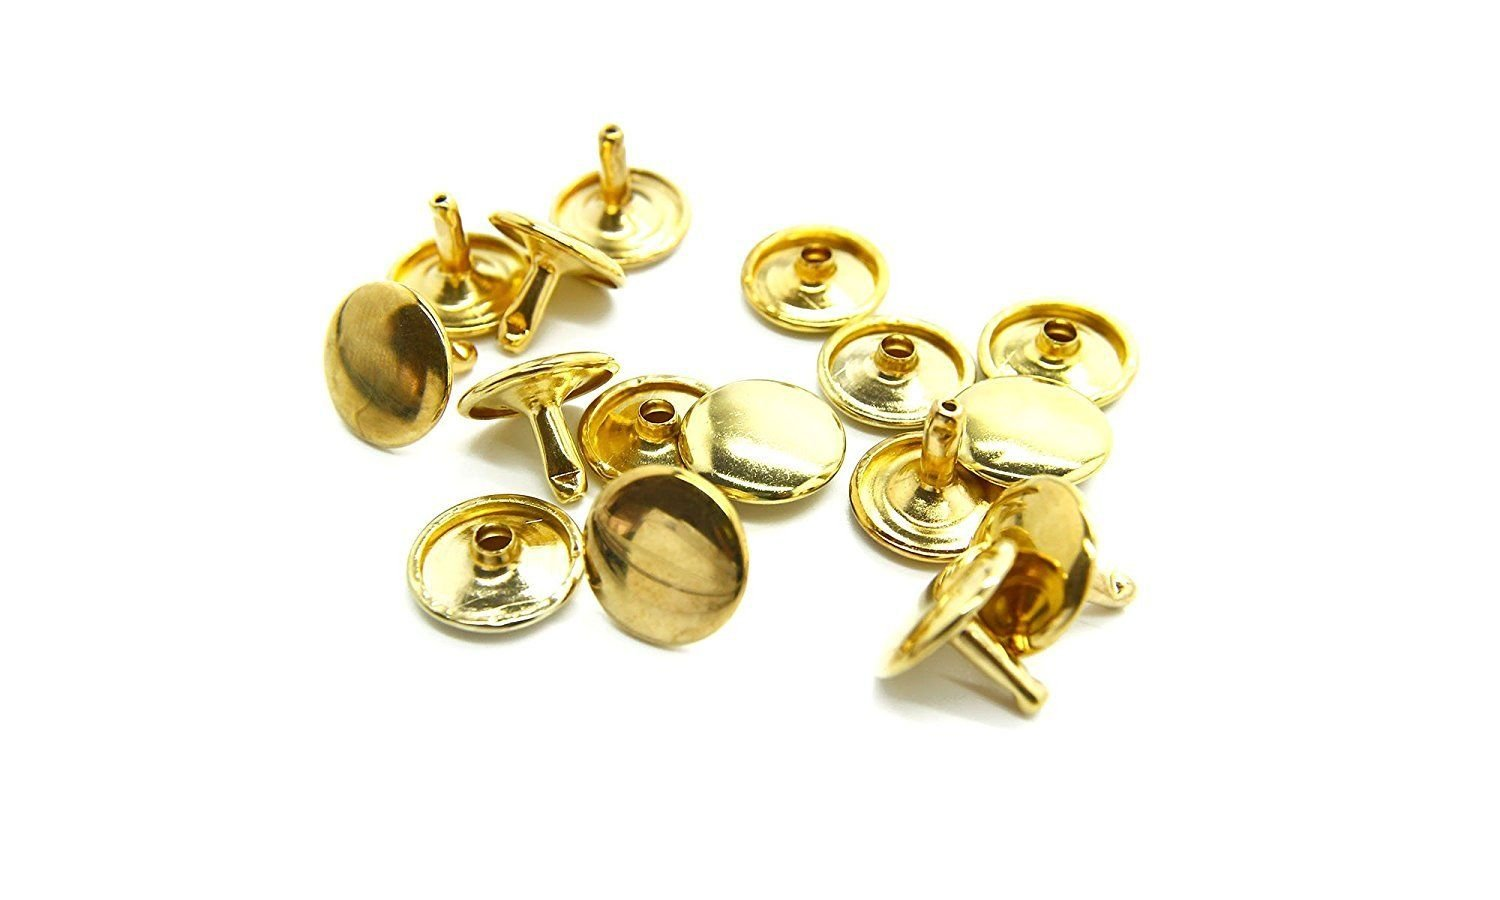 6mm Tubular Double Cap Set of 100 Pieces Rivets Craftsman Shoes Bags Cloths Repair Setting Studs Leather Arts and Crafts by Wedding Decor